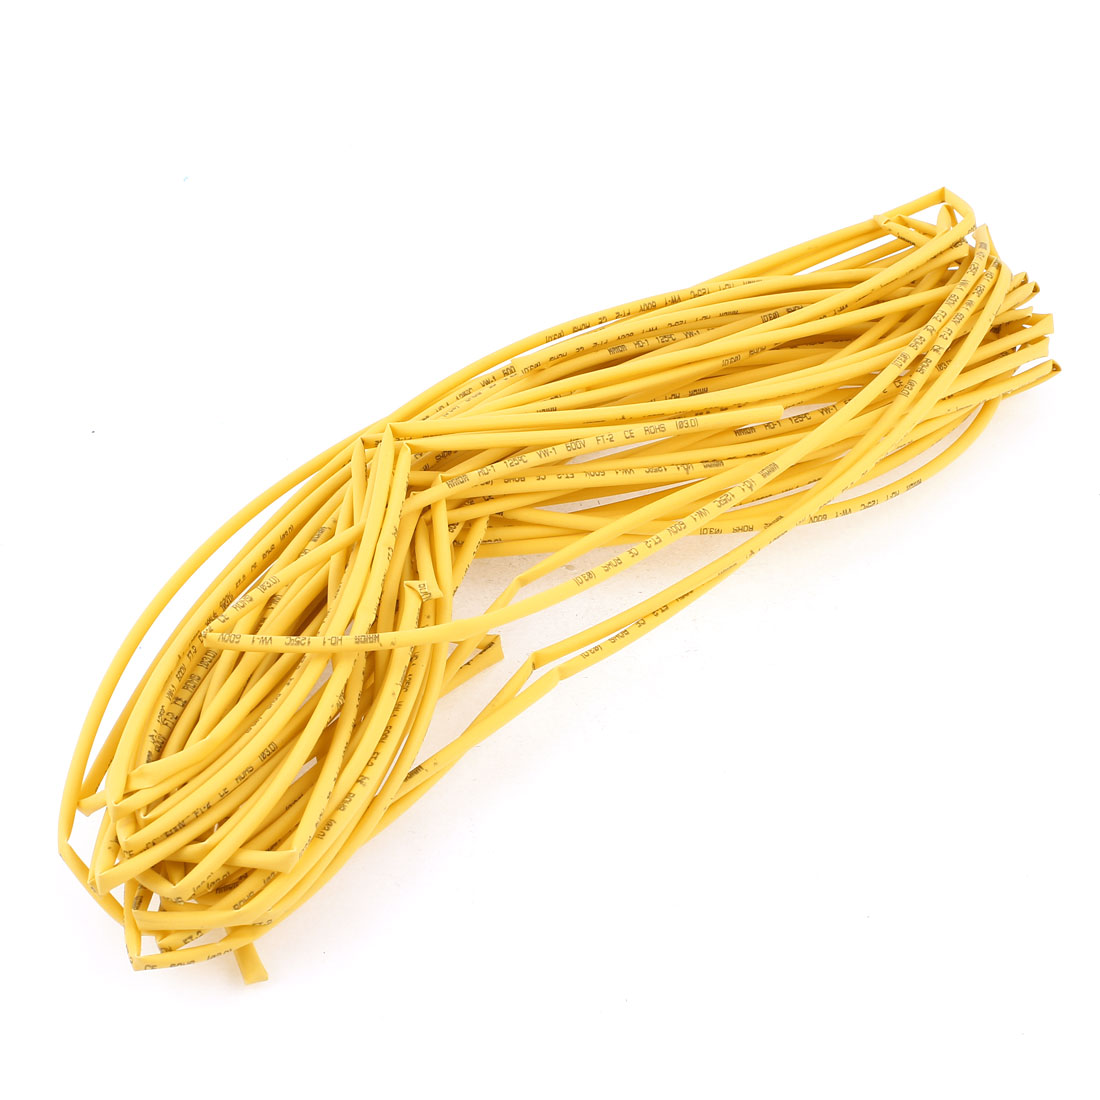 Ratio 2:1 Yellow Polyolefin 3mm Dia Heat Shrink Cover Wiring Shrinkable Tube 20M